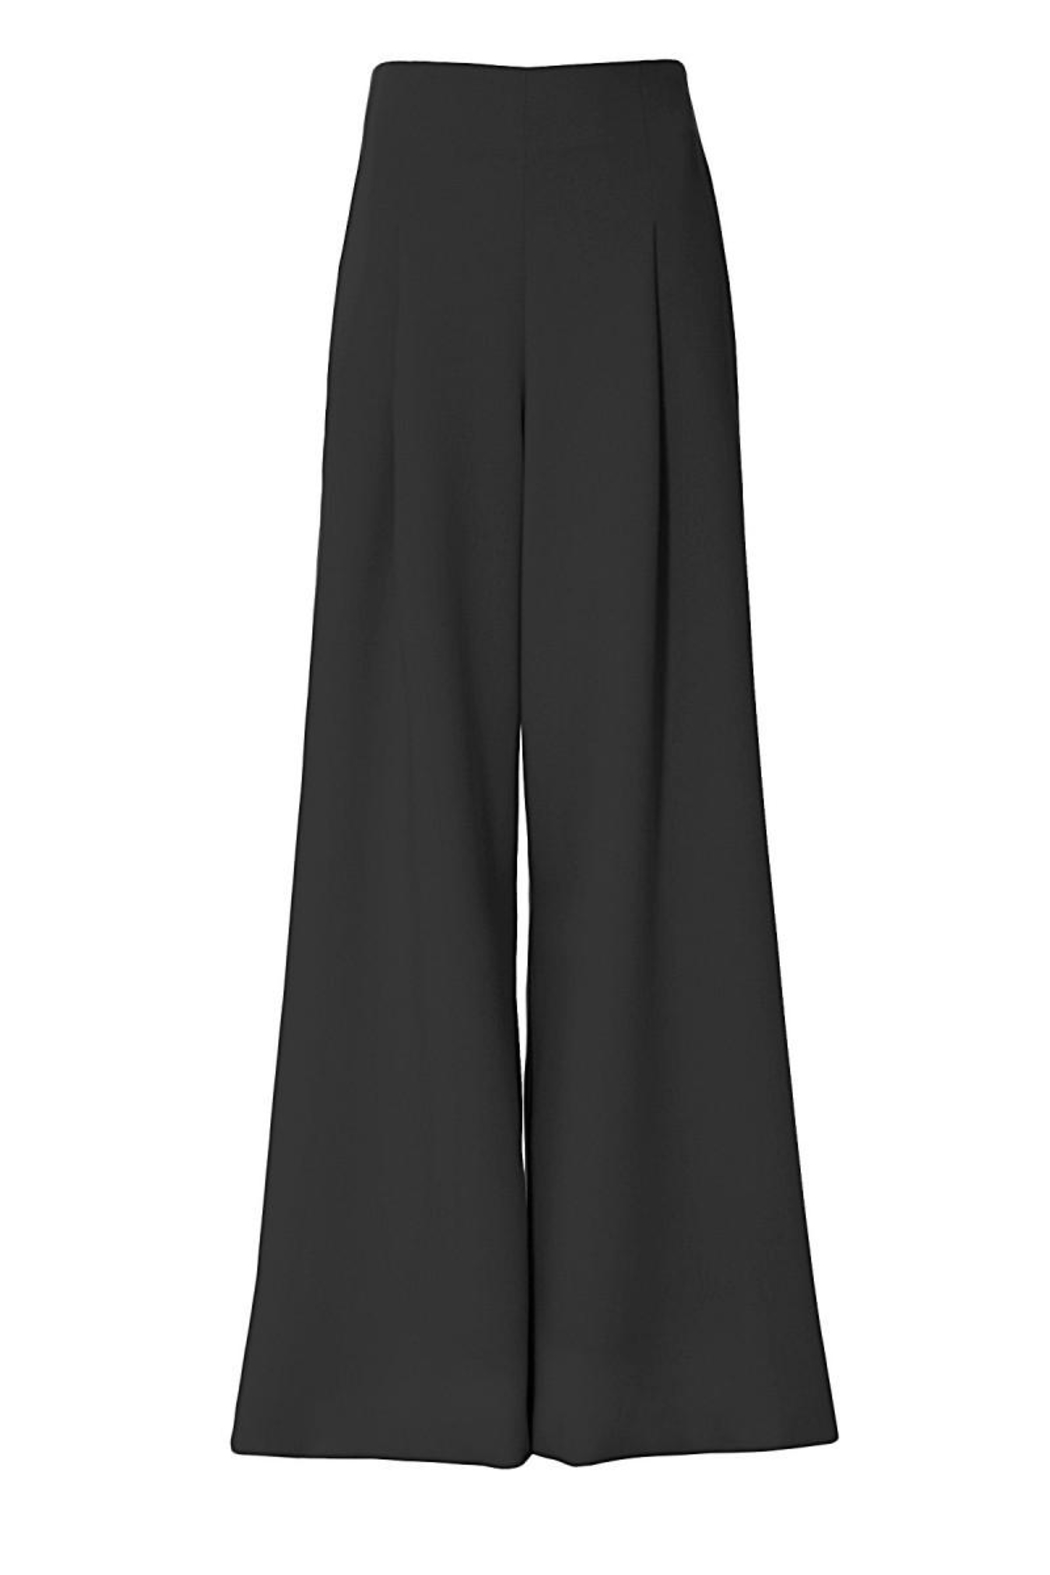 AGGI Pants Rebecca Total Eclipse - Side Cropped Image